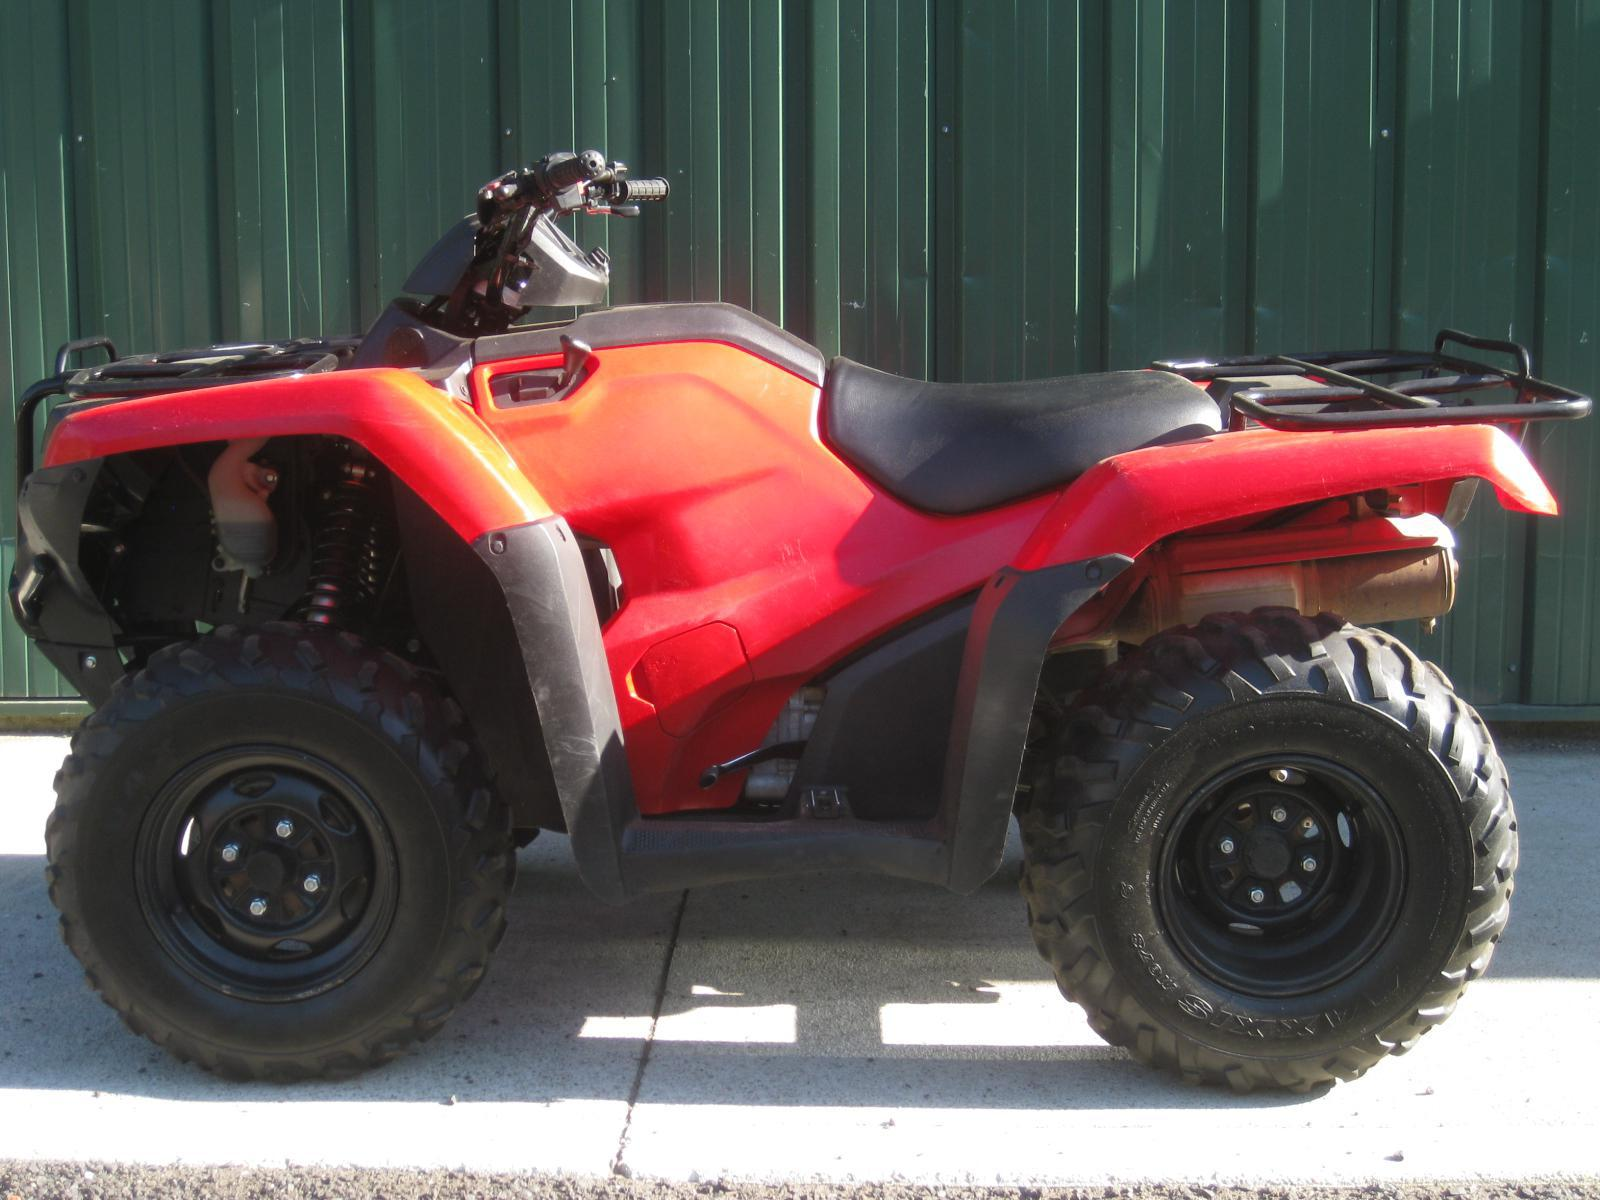 Honda 420 Rancher >> 2016 Honda Rancher 420 Stock 4x4 With Bumpers Very Clean Turn Key Must See Priced To Sell